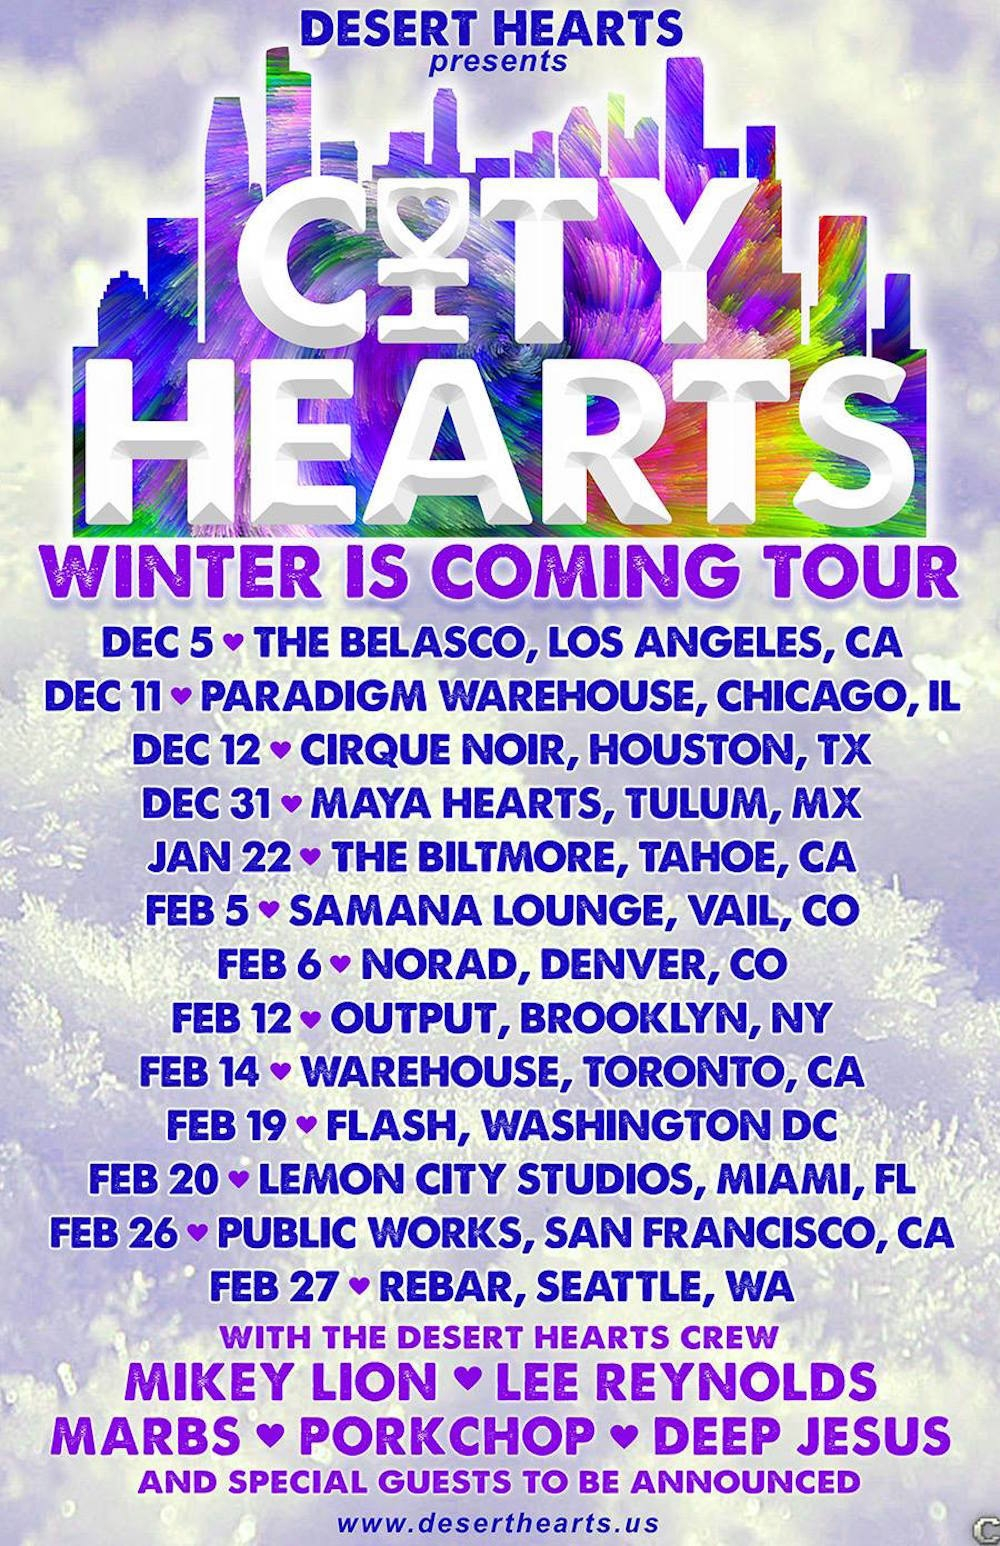 desert-hearts-is-bringing-house-techno-and-love-to-mexico-canada-brooklyn-la-and-more-this-winter-body-image-1447870400